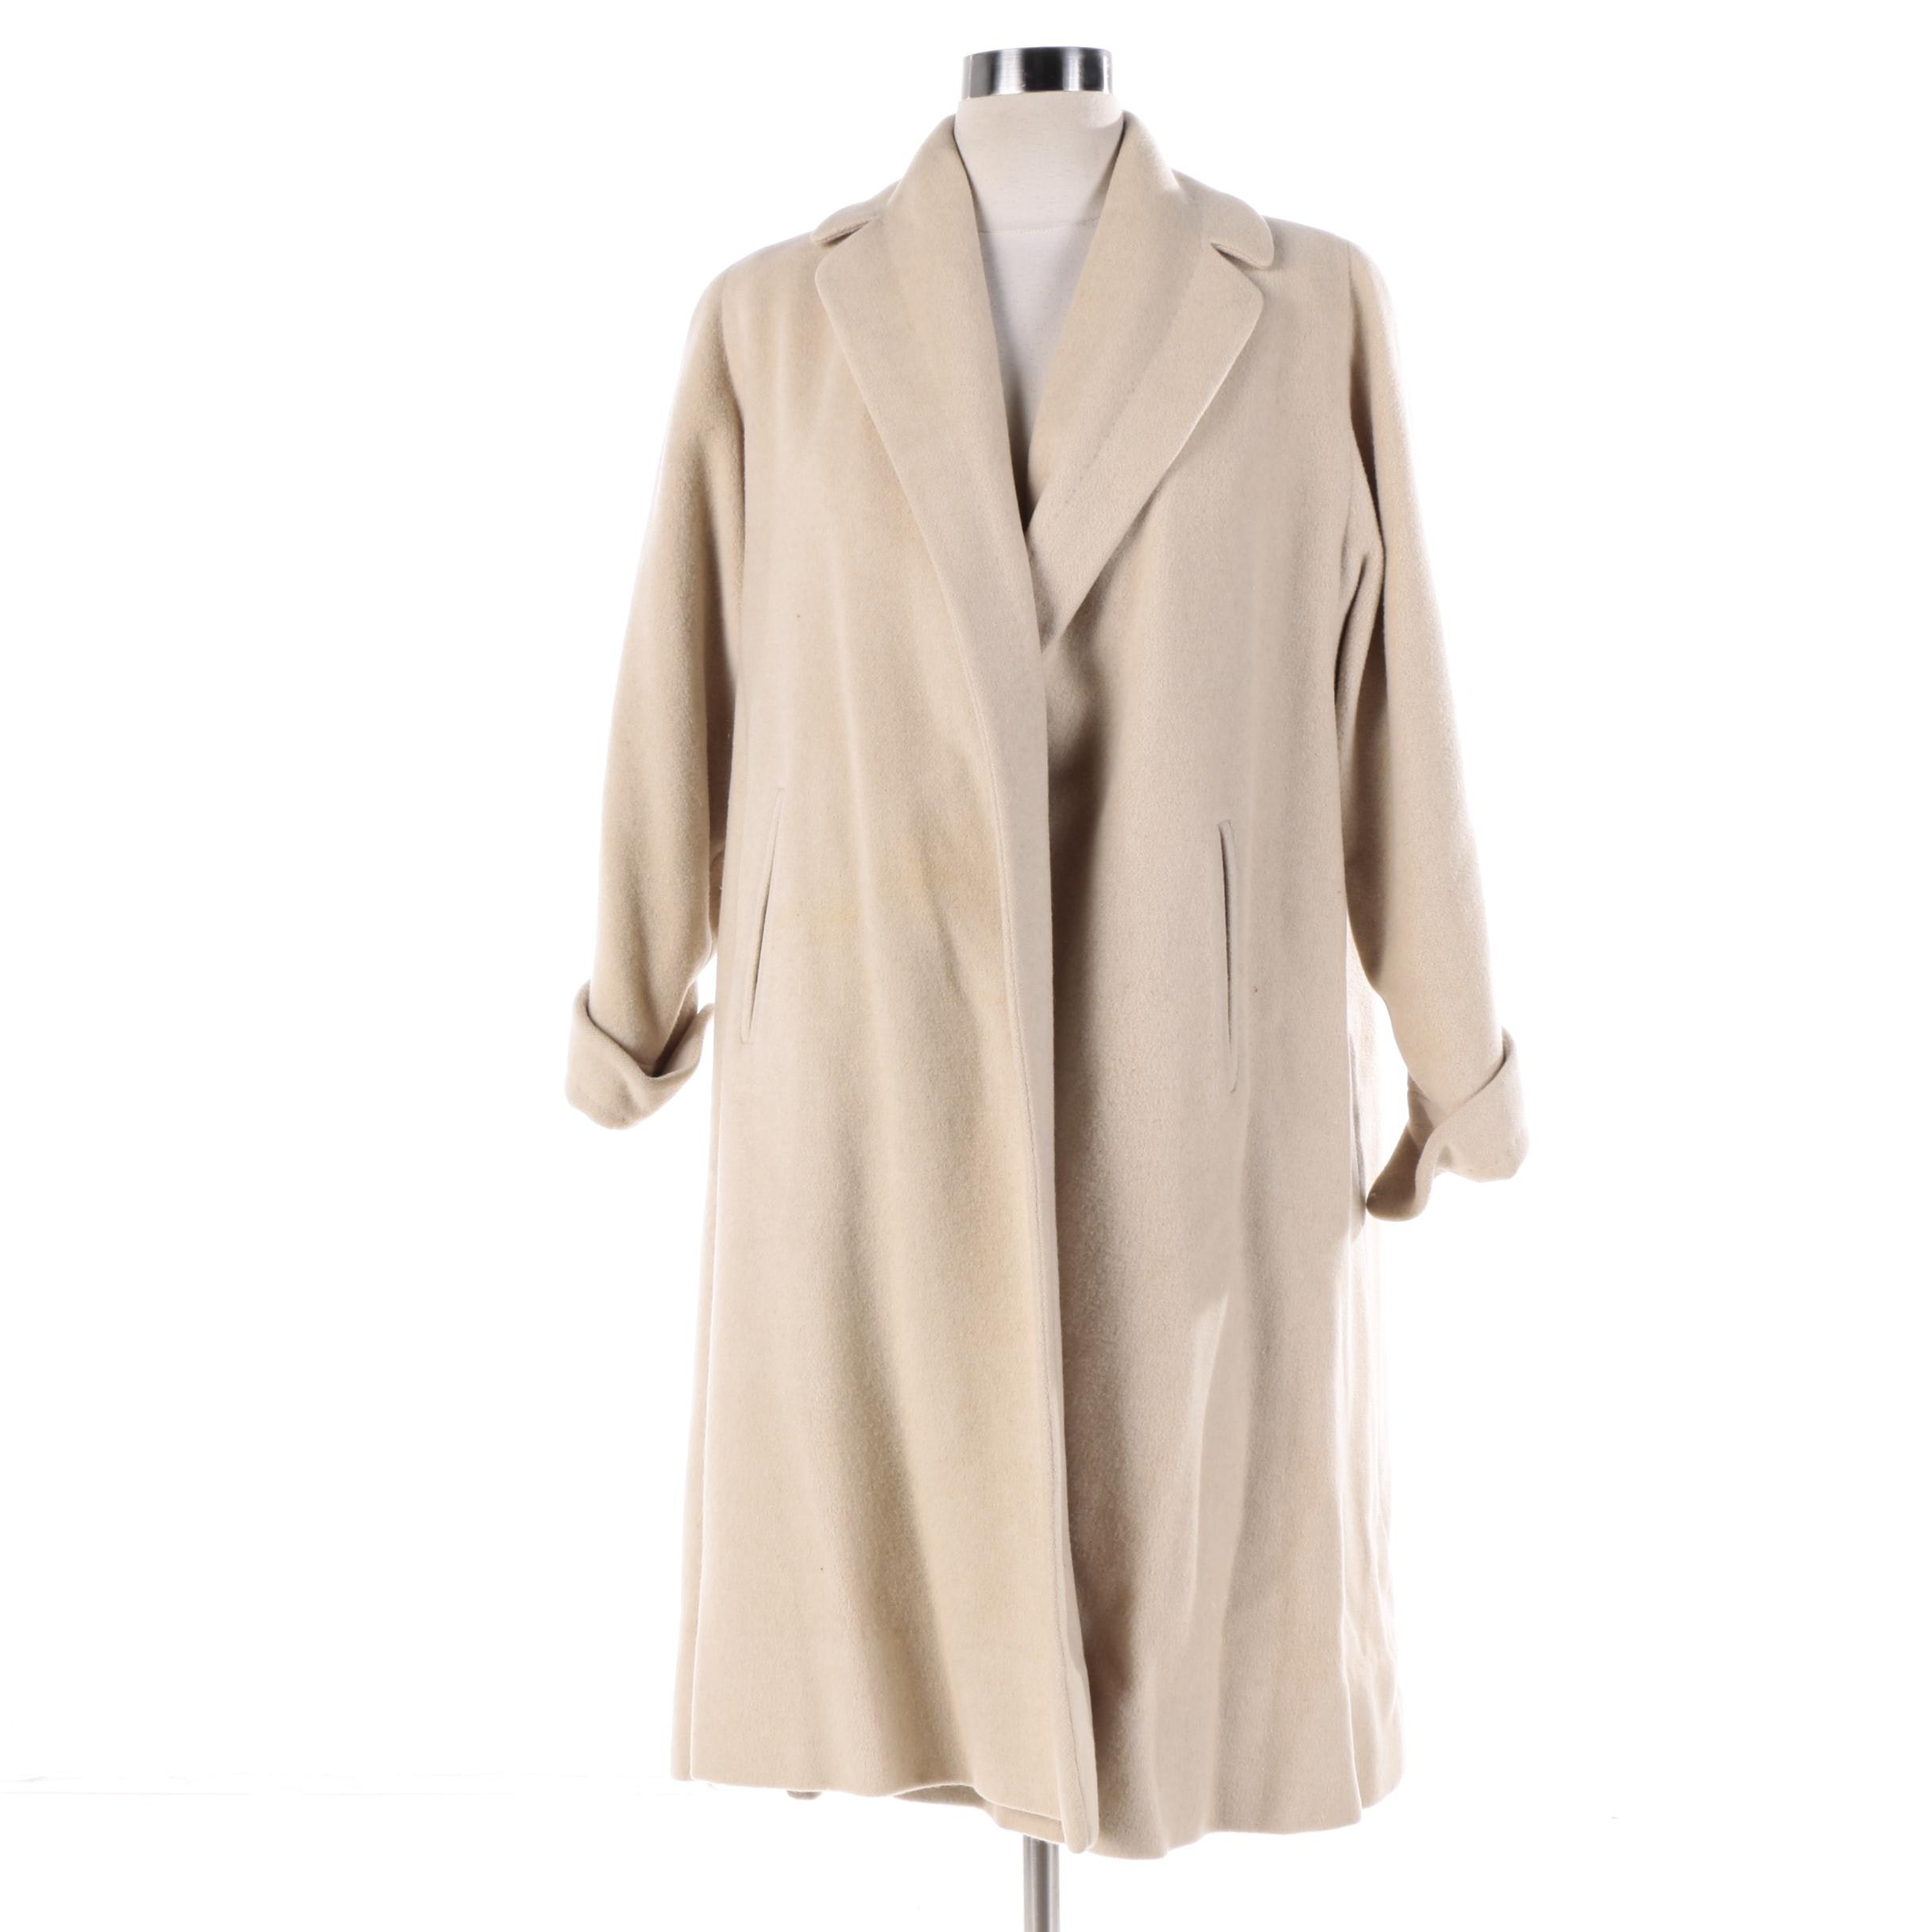 Women's Vintage Lytton's Cashmere Topper Coat